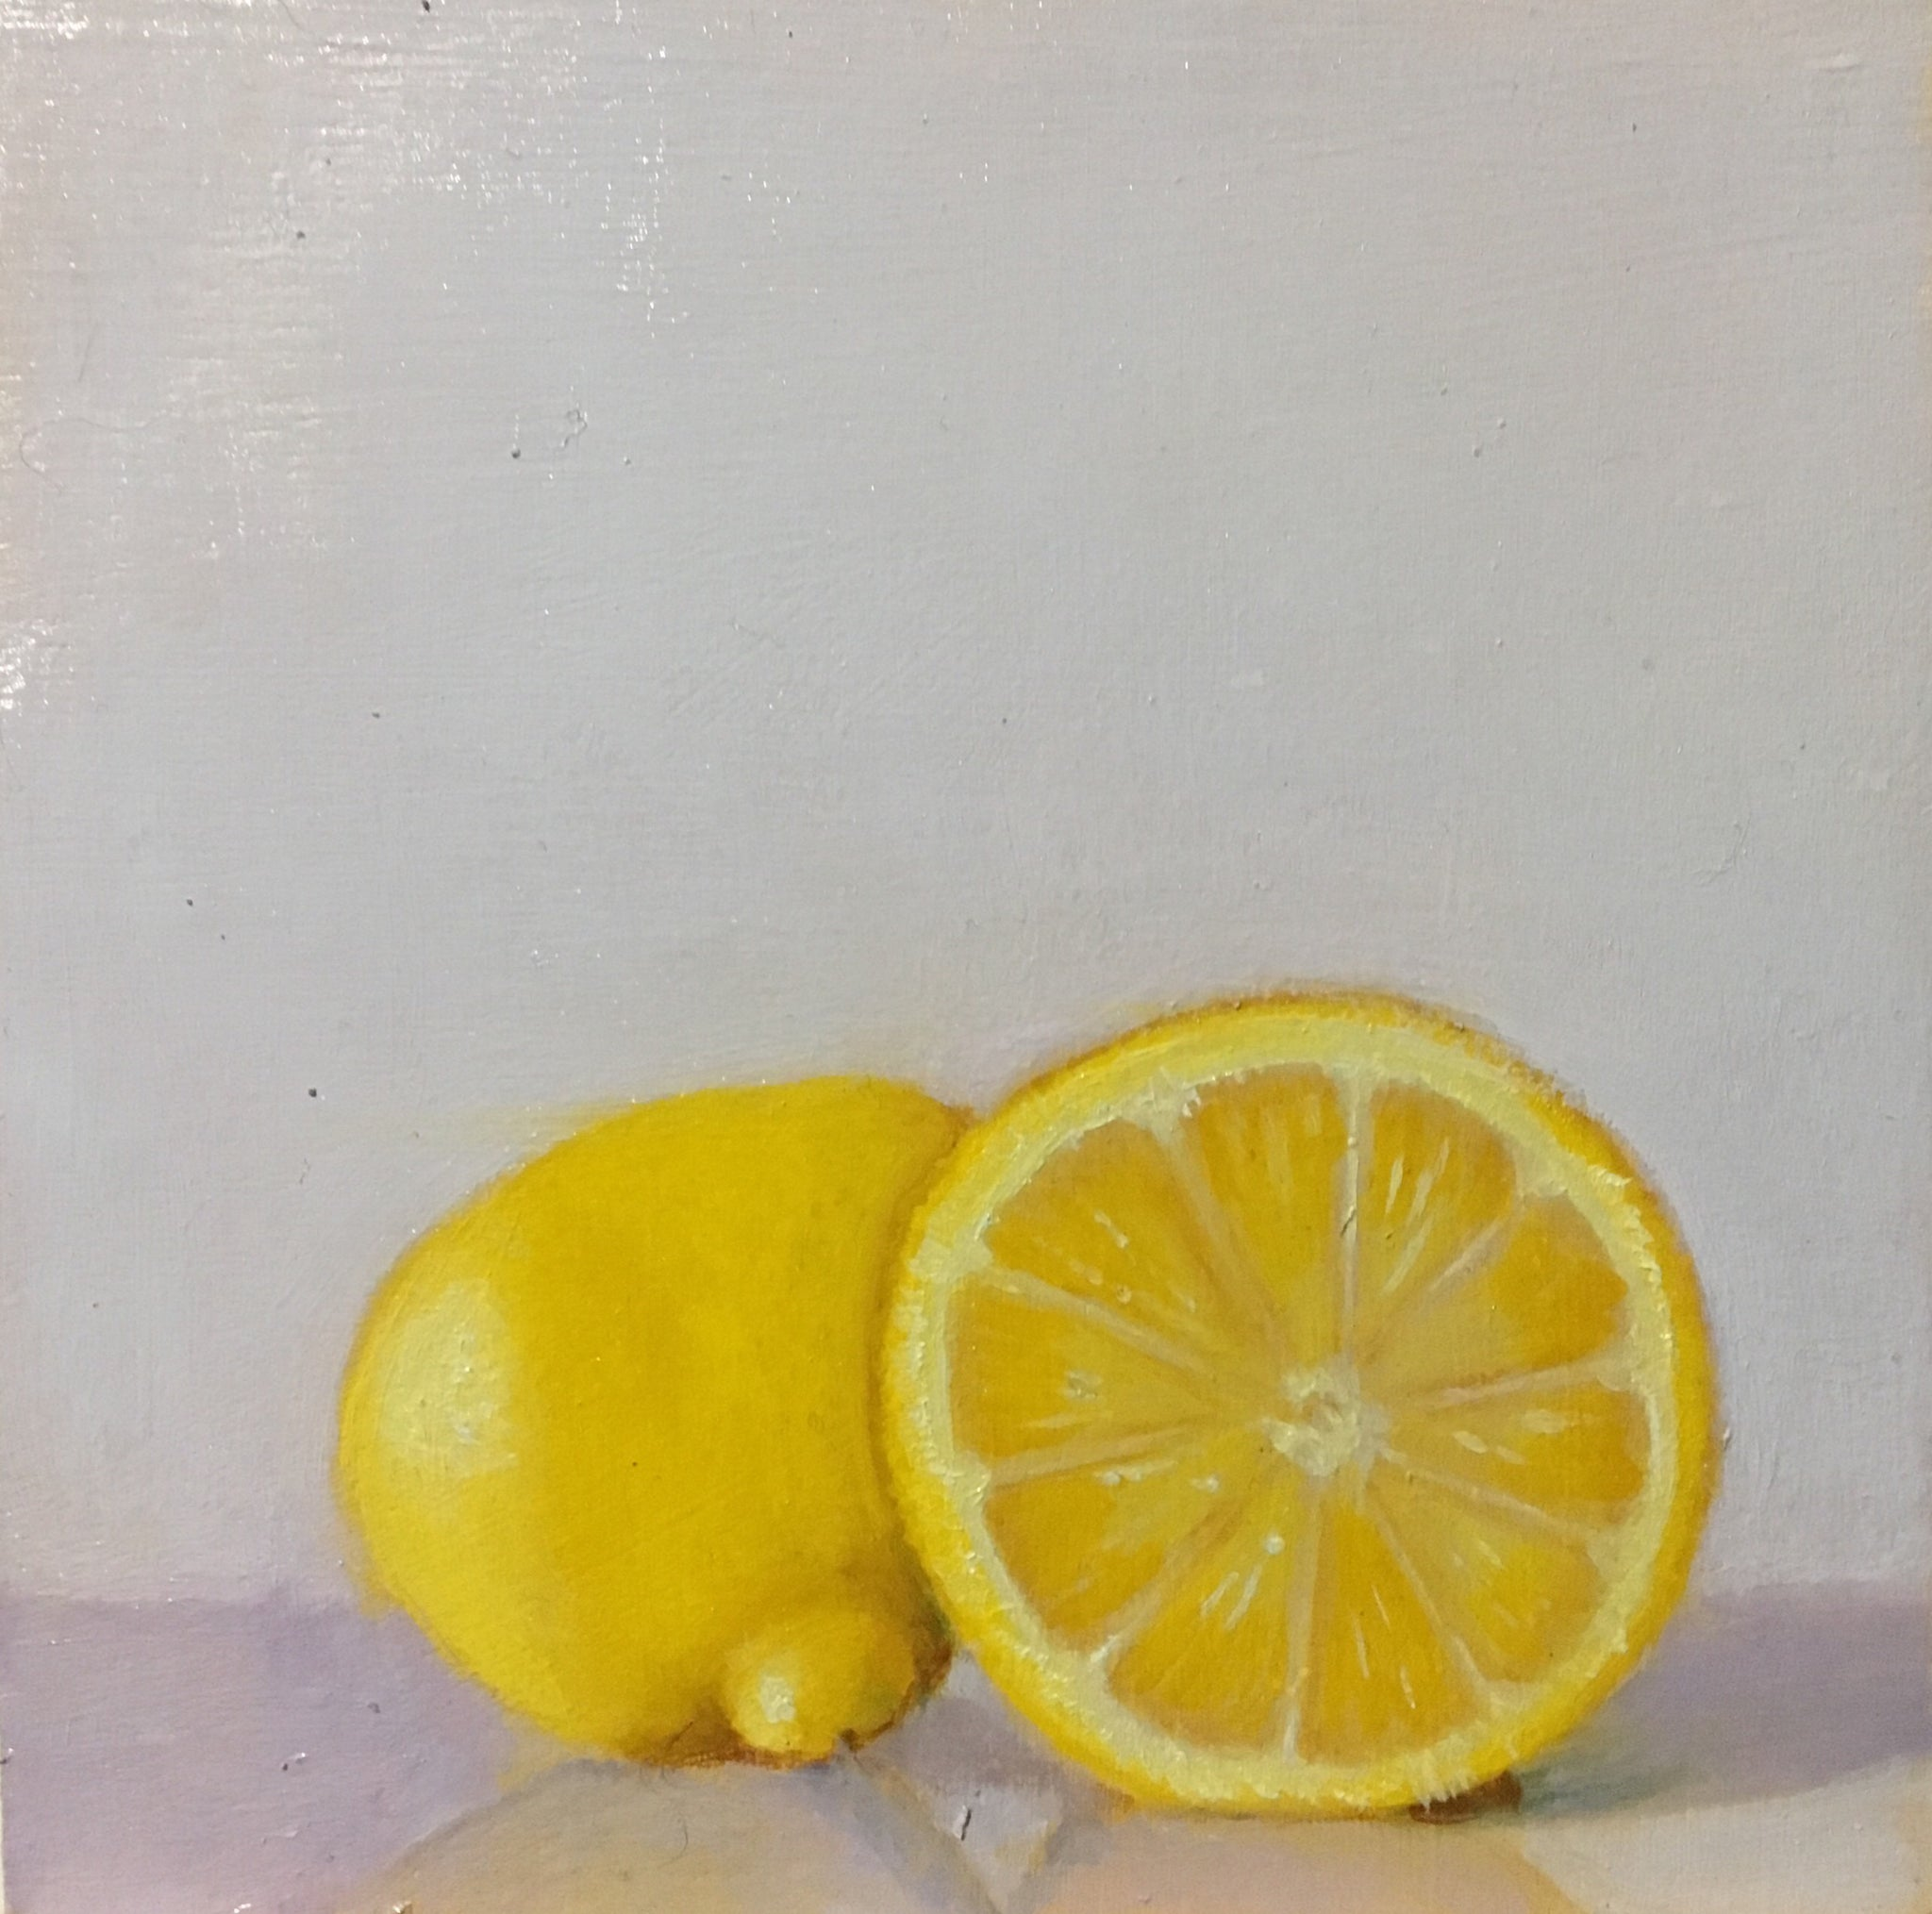 Lemony Lemon - Sold